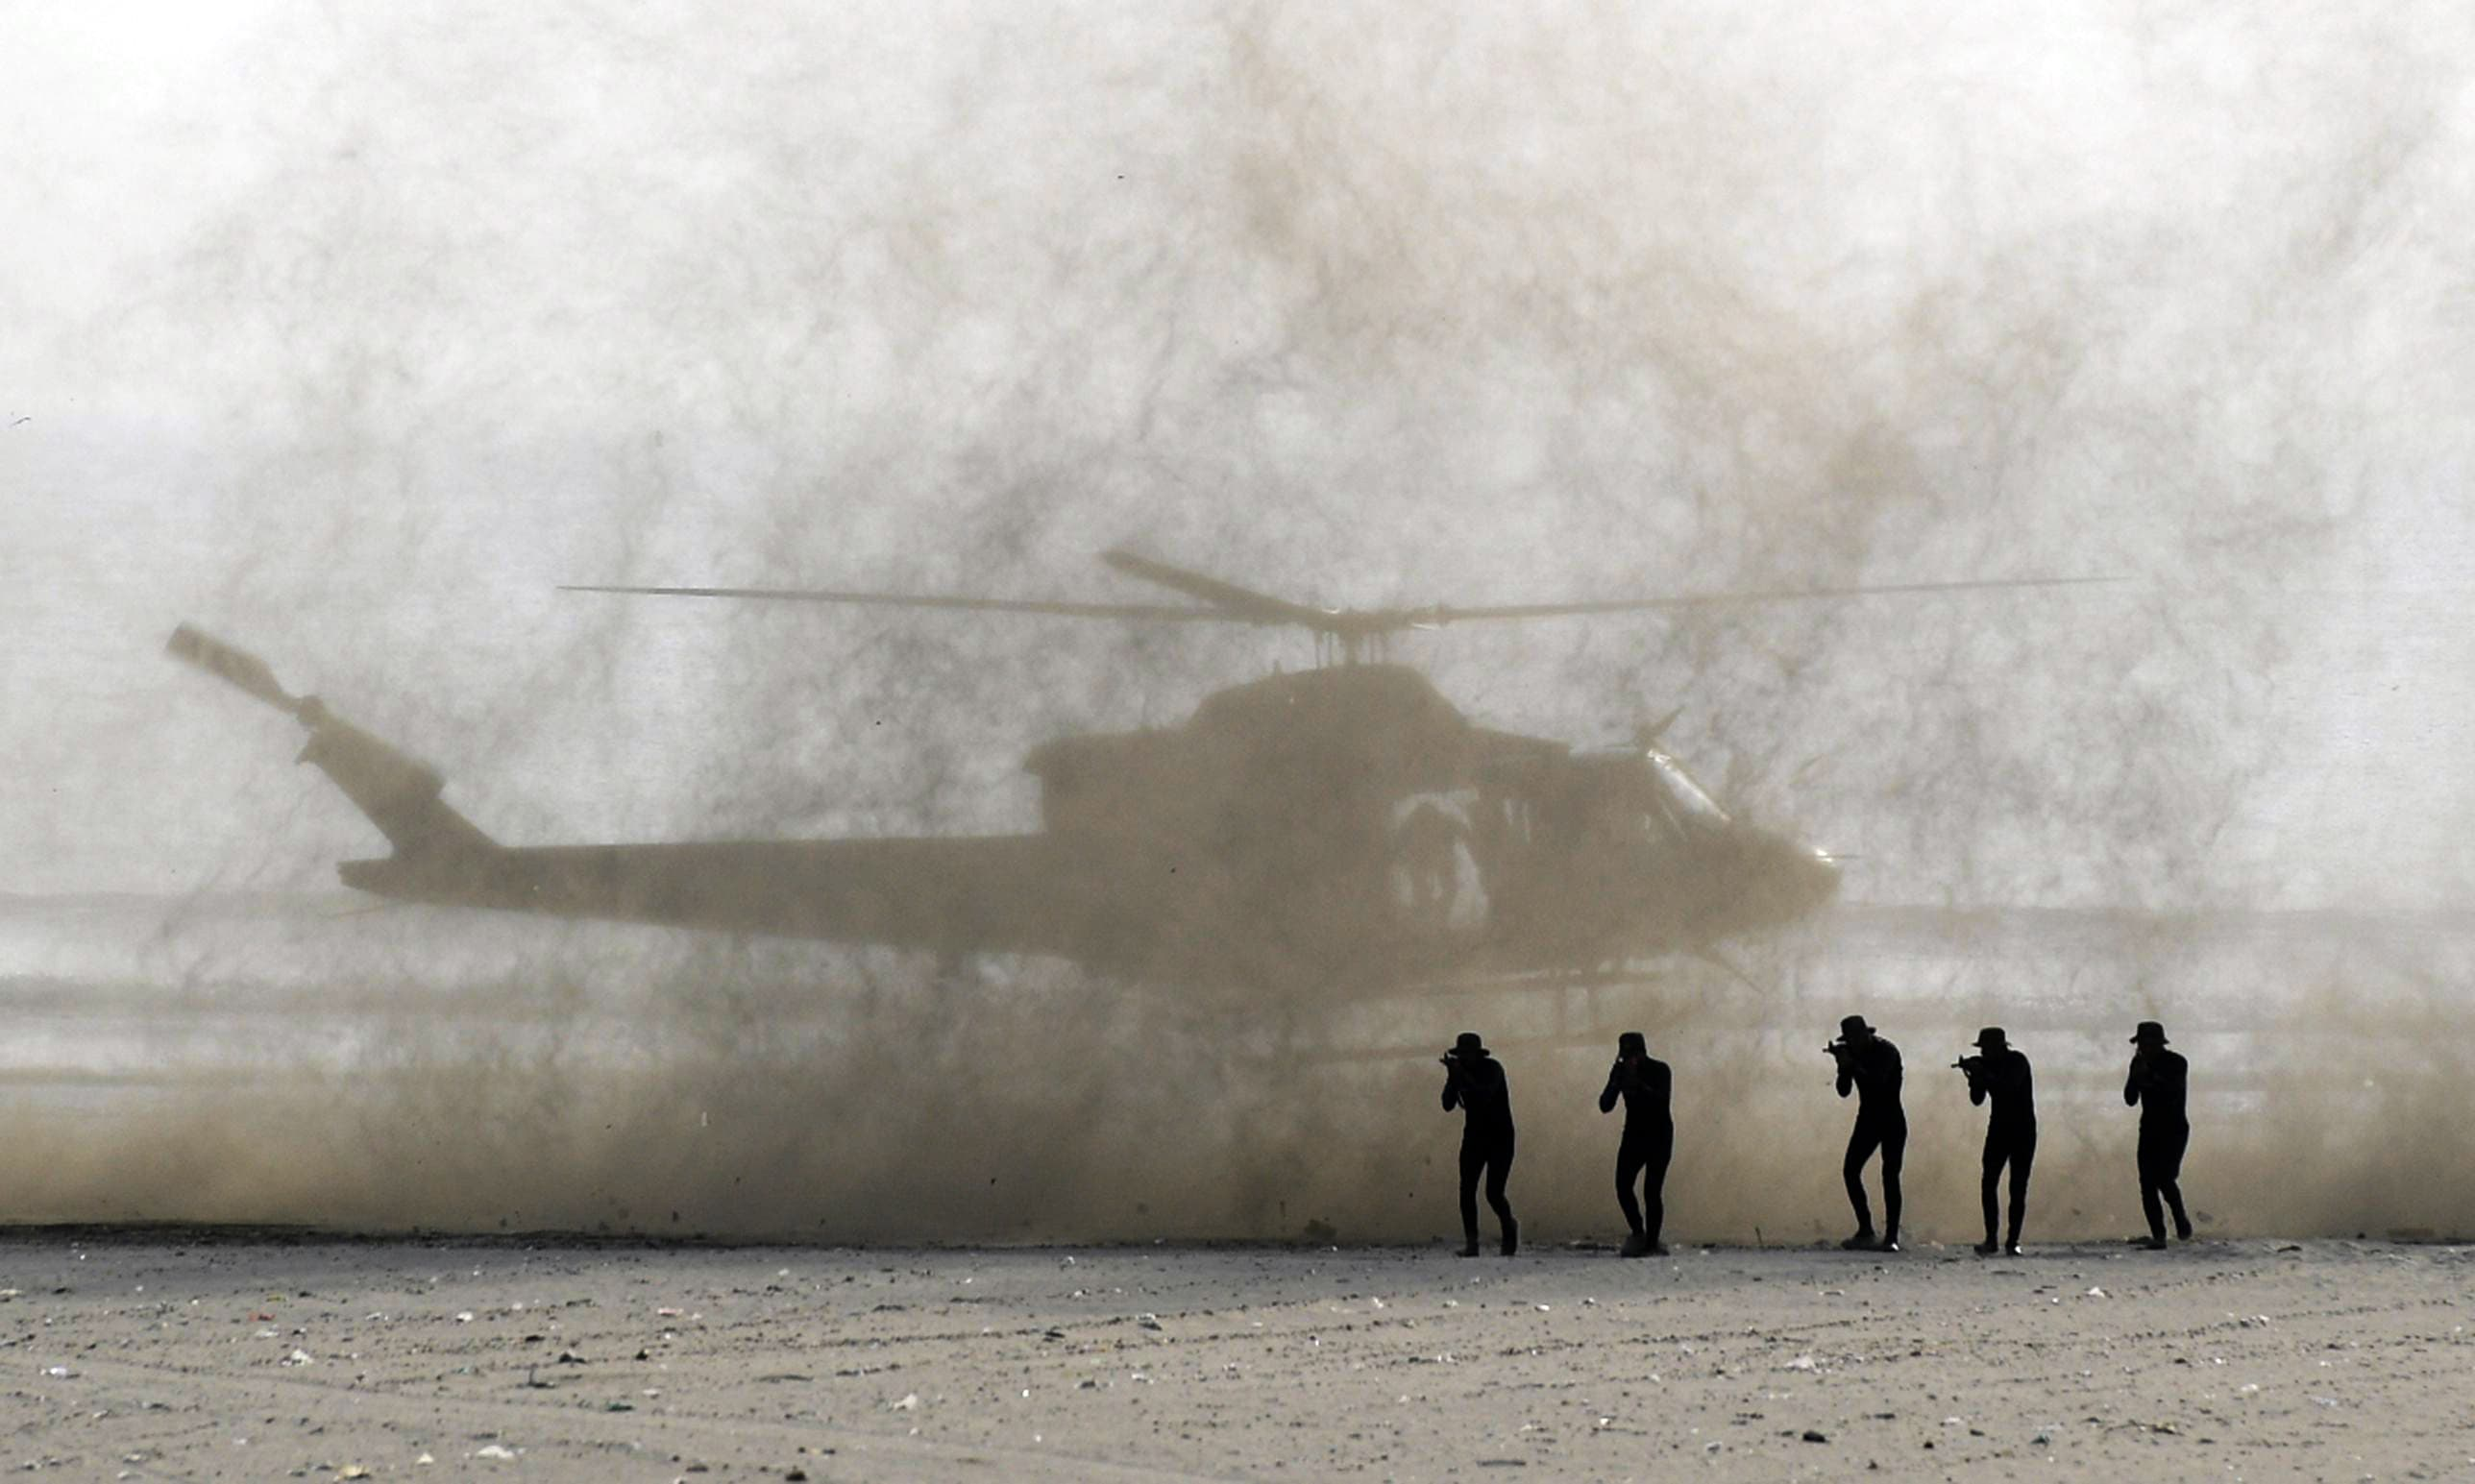 Military personnel take part in a drill as part of the 10th IDEAS expo in Karachi. —AFP